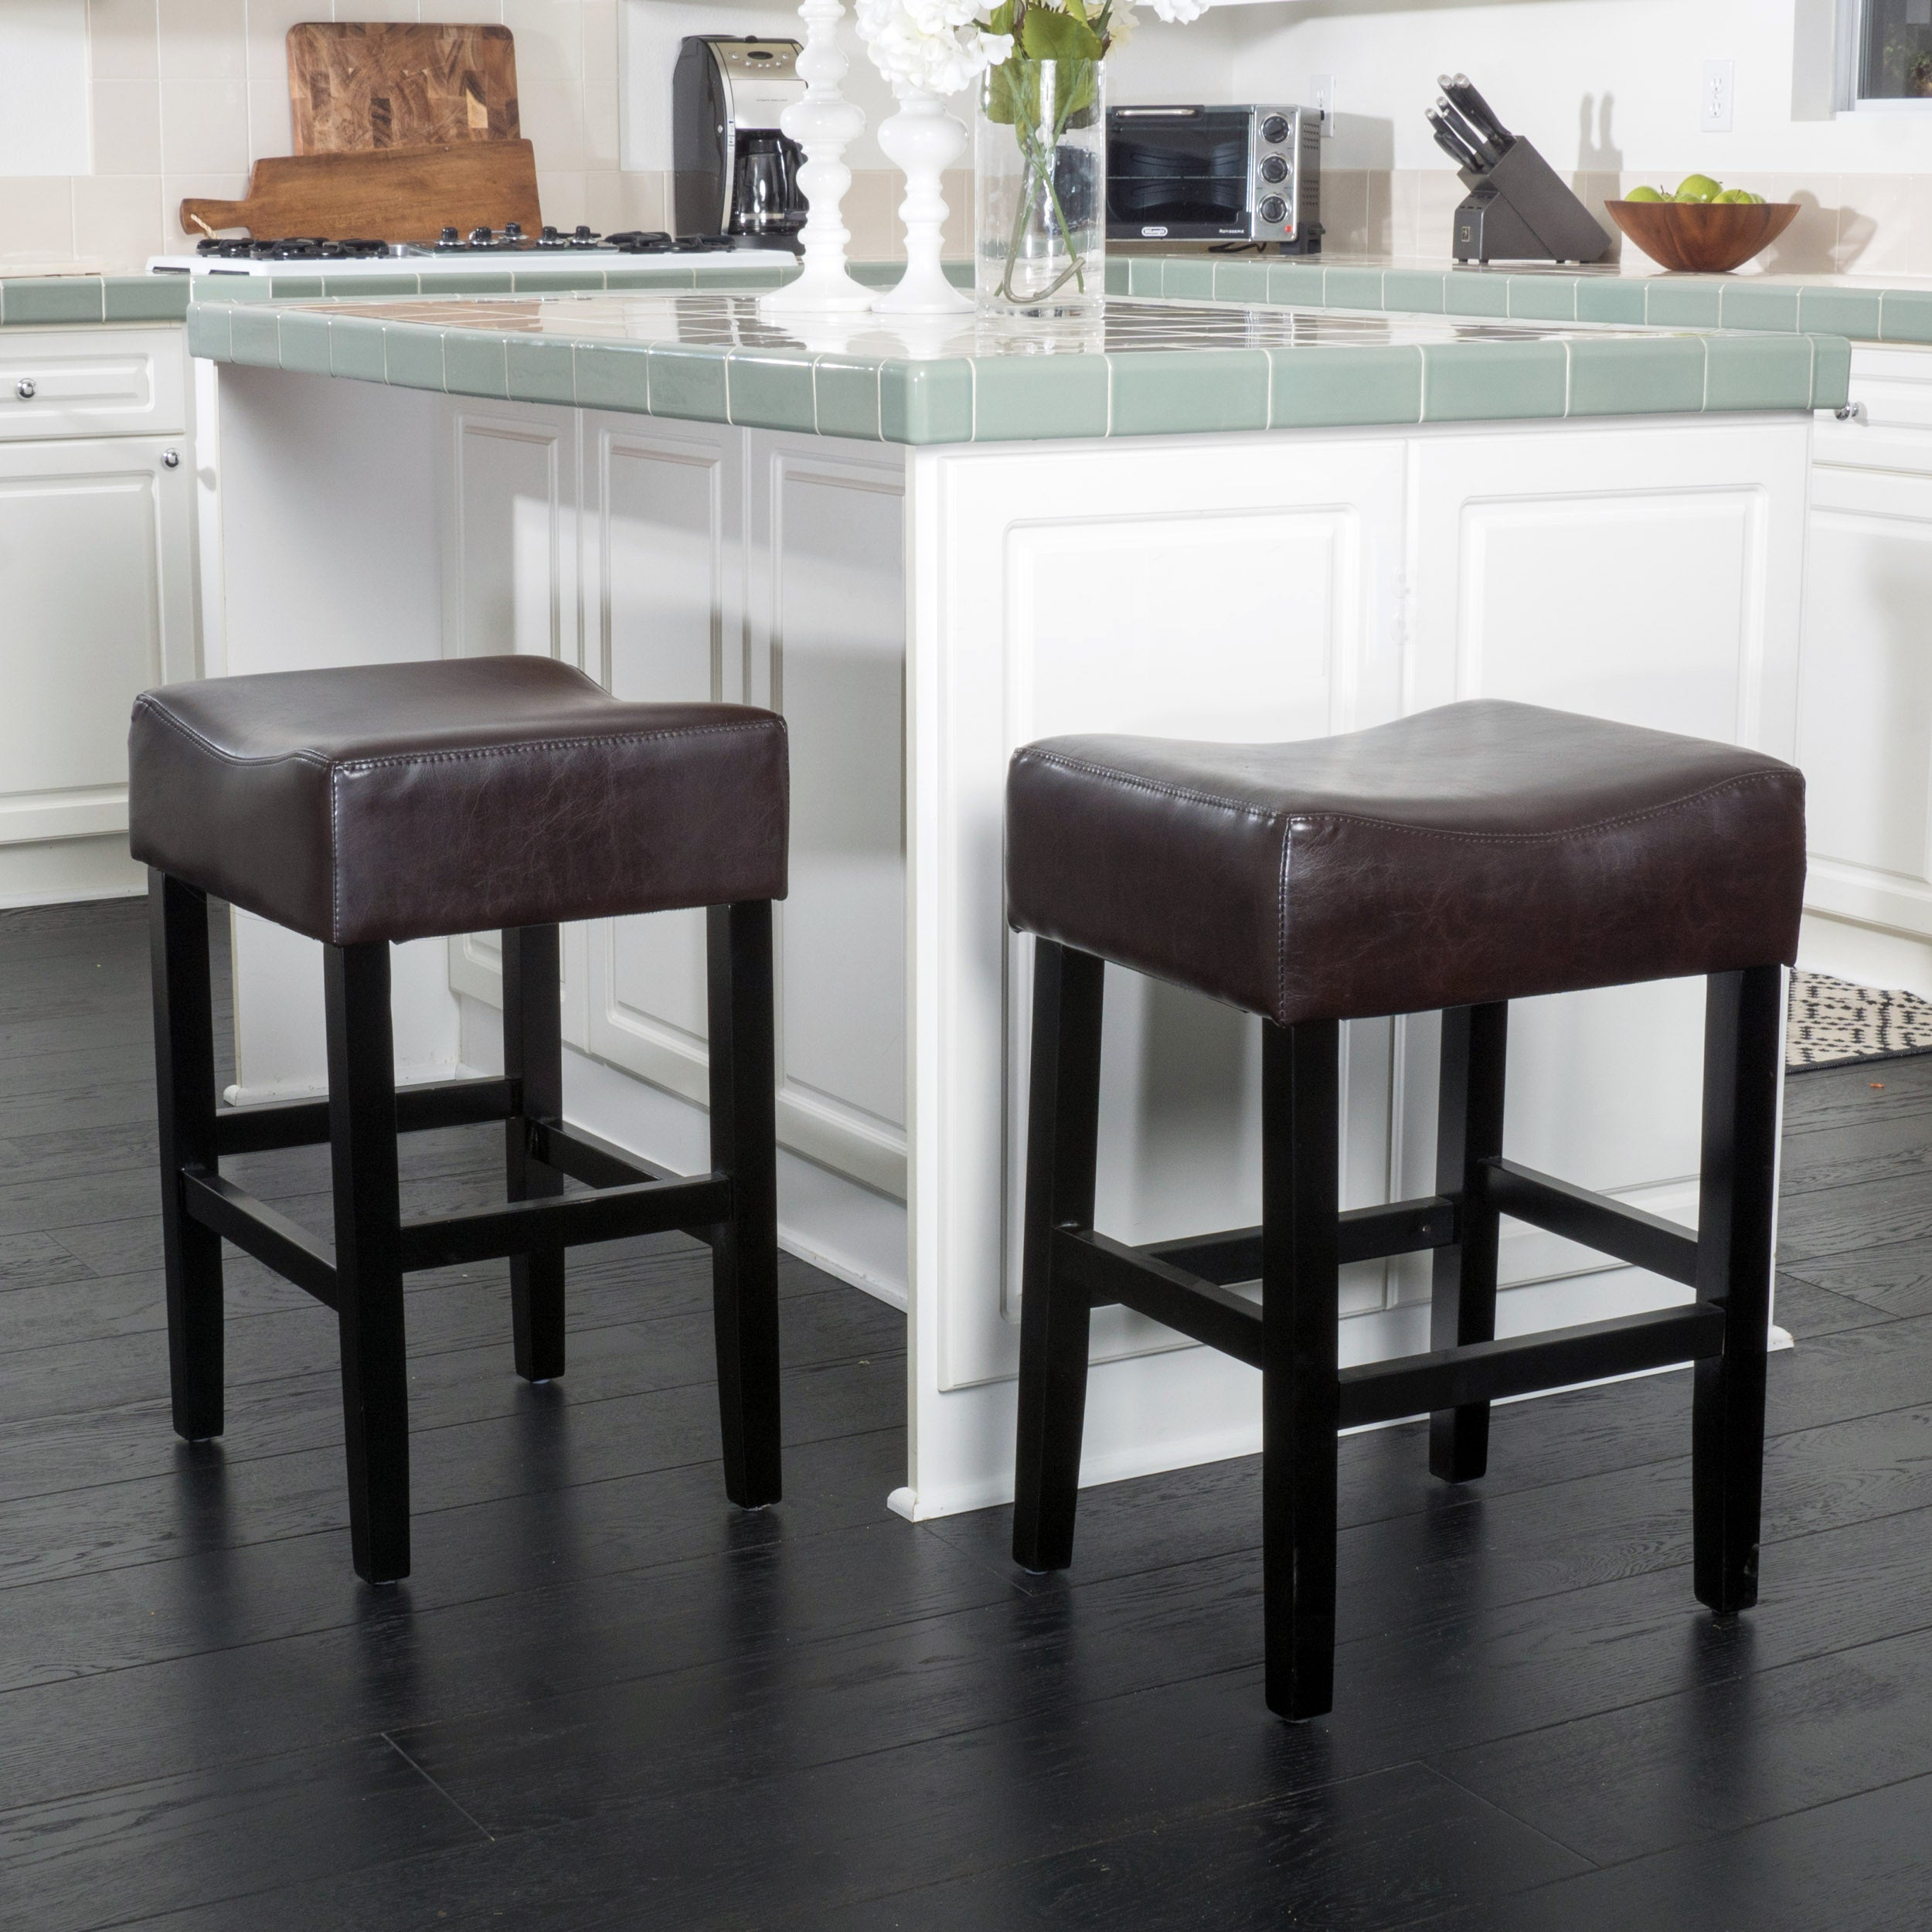 Details About Portman 26 Inch Bonded Leather Backless Counter Stool Set Of 2 By Christopher